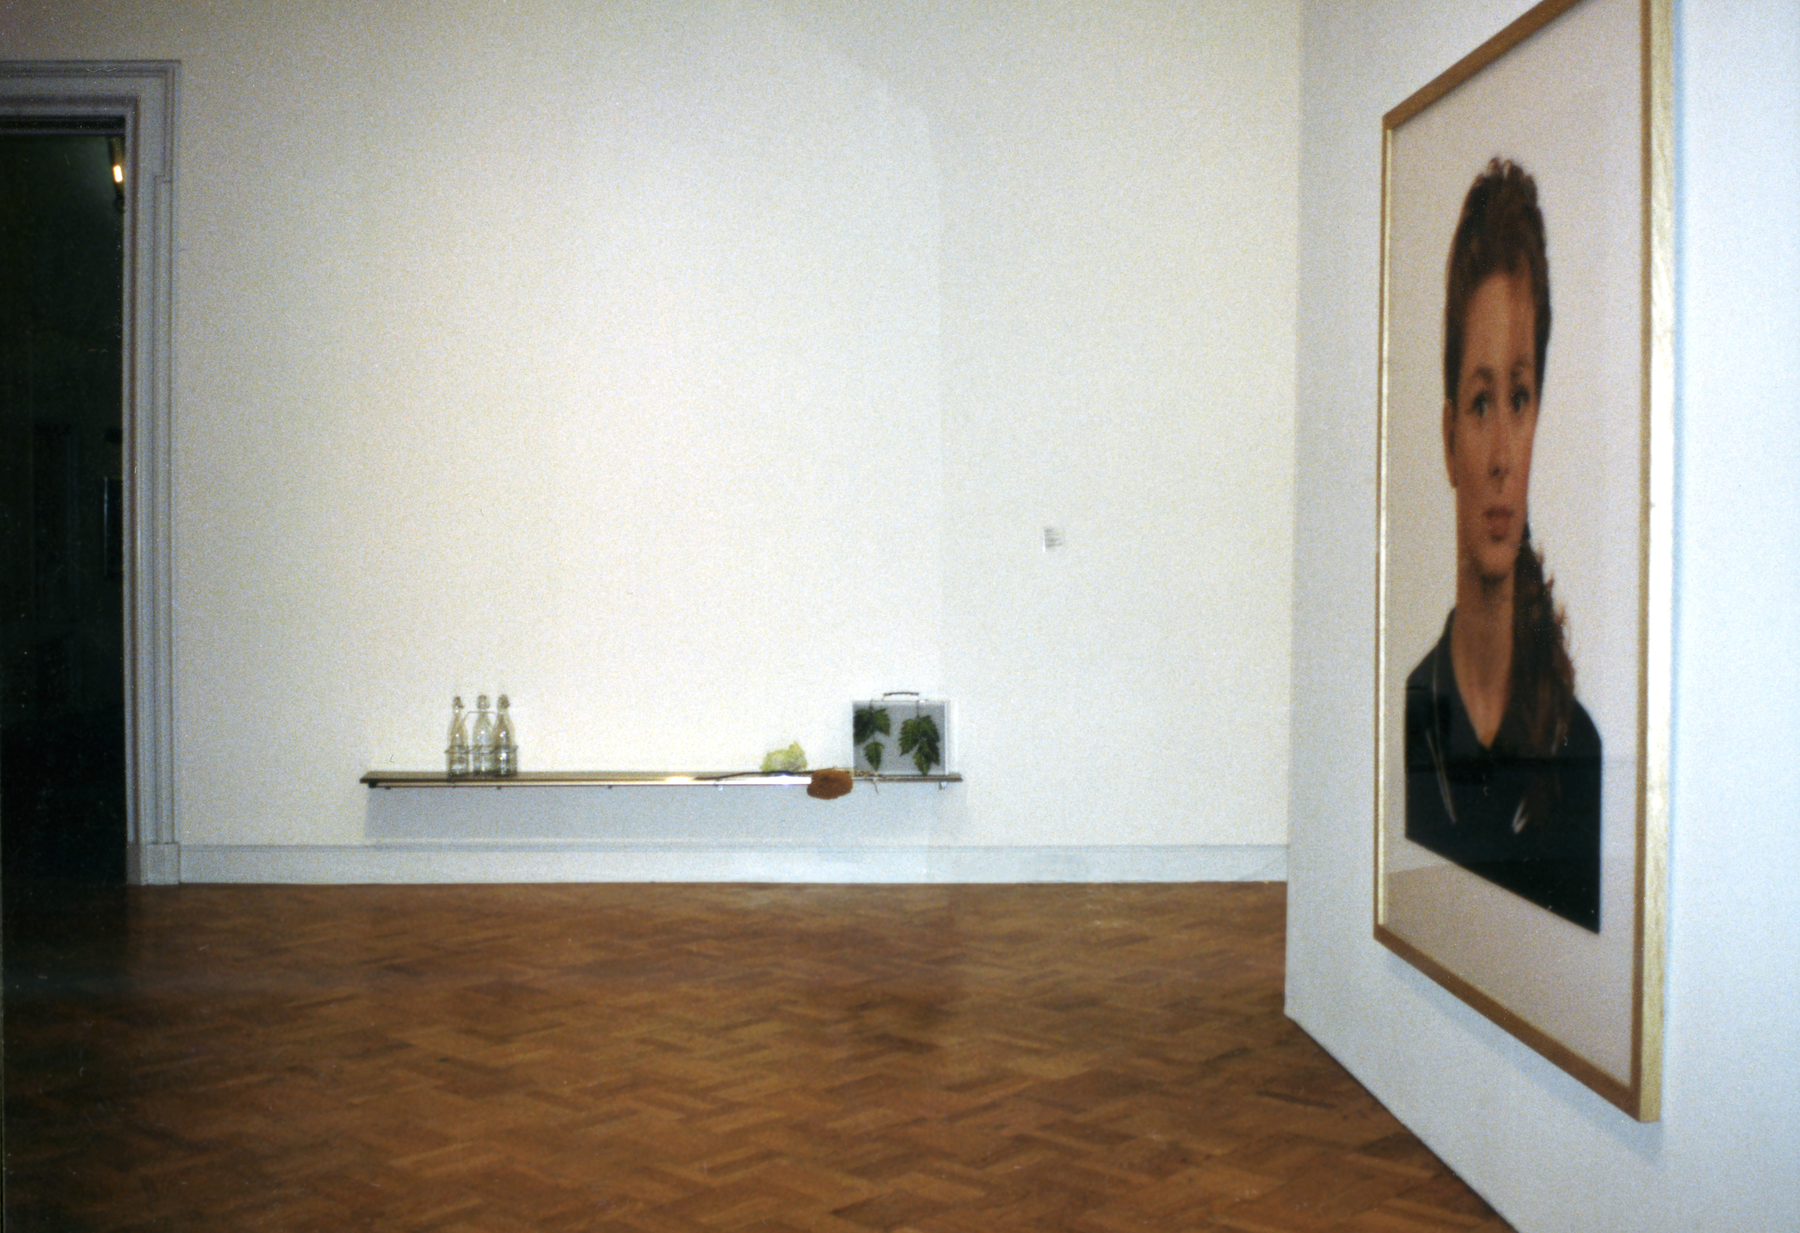 A gallery with a framed portrait of a woman, a metal briefcase with leaves on it, and bottles placed on a shelf.